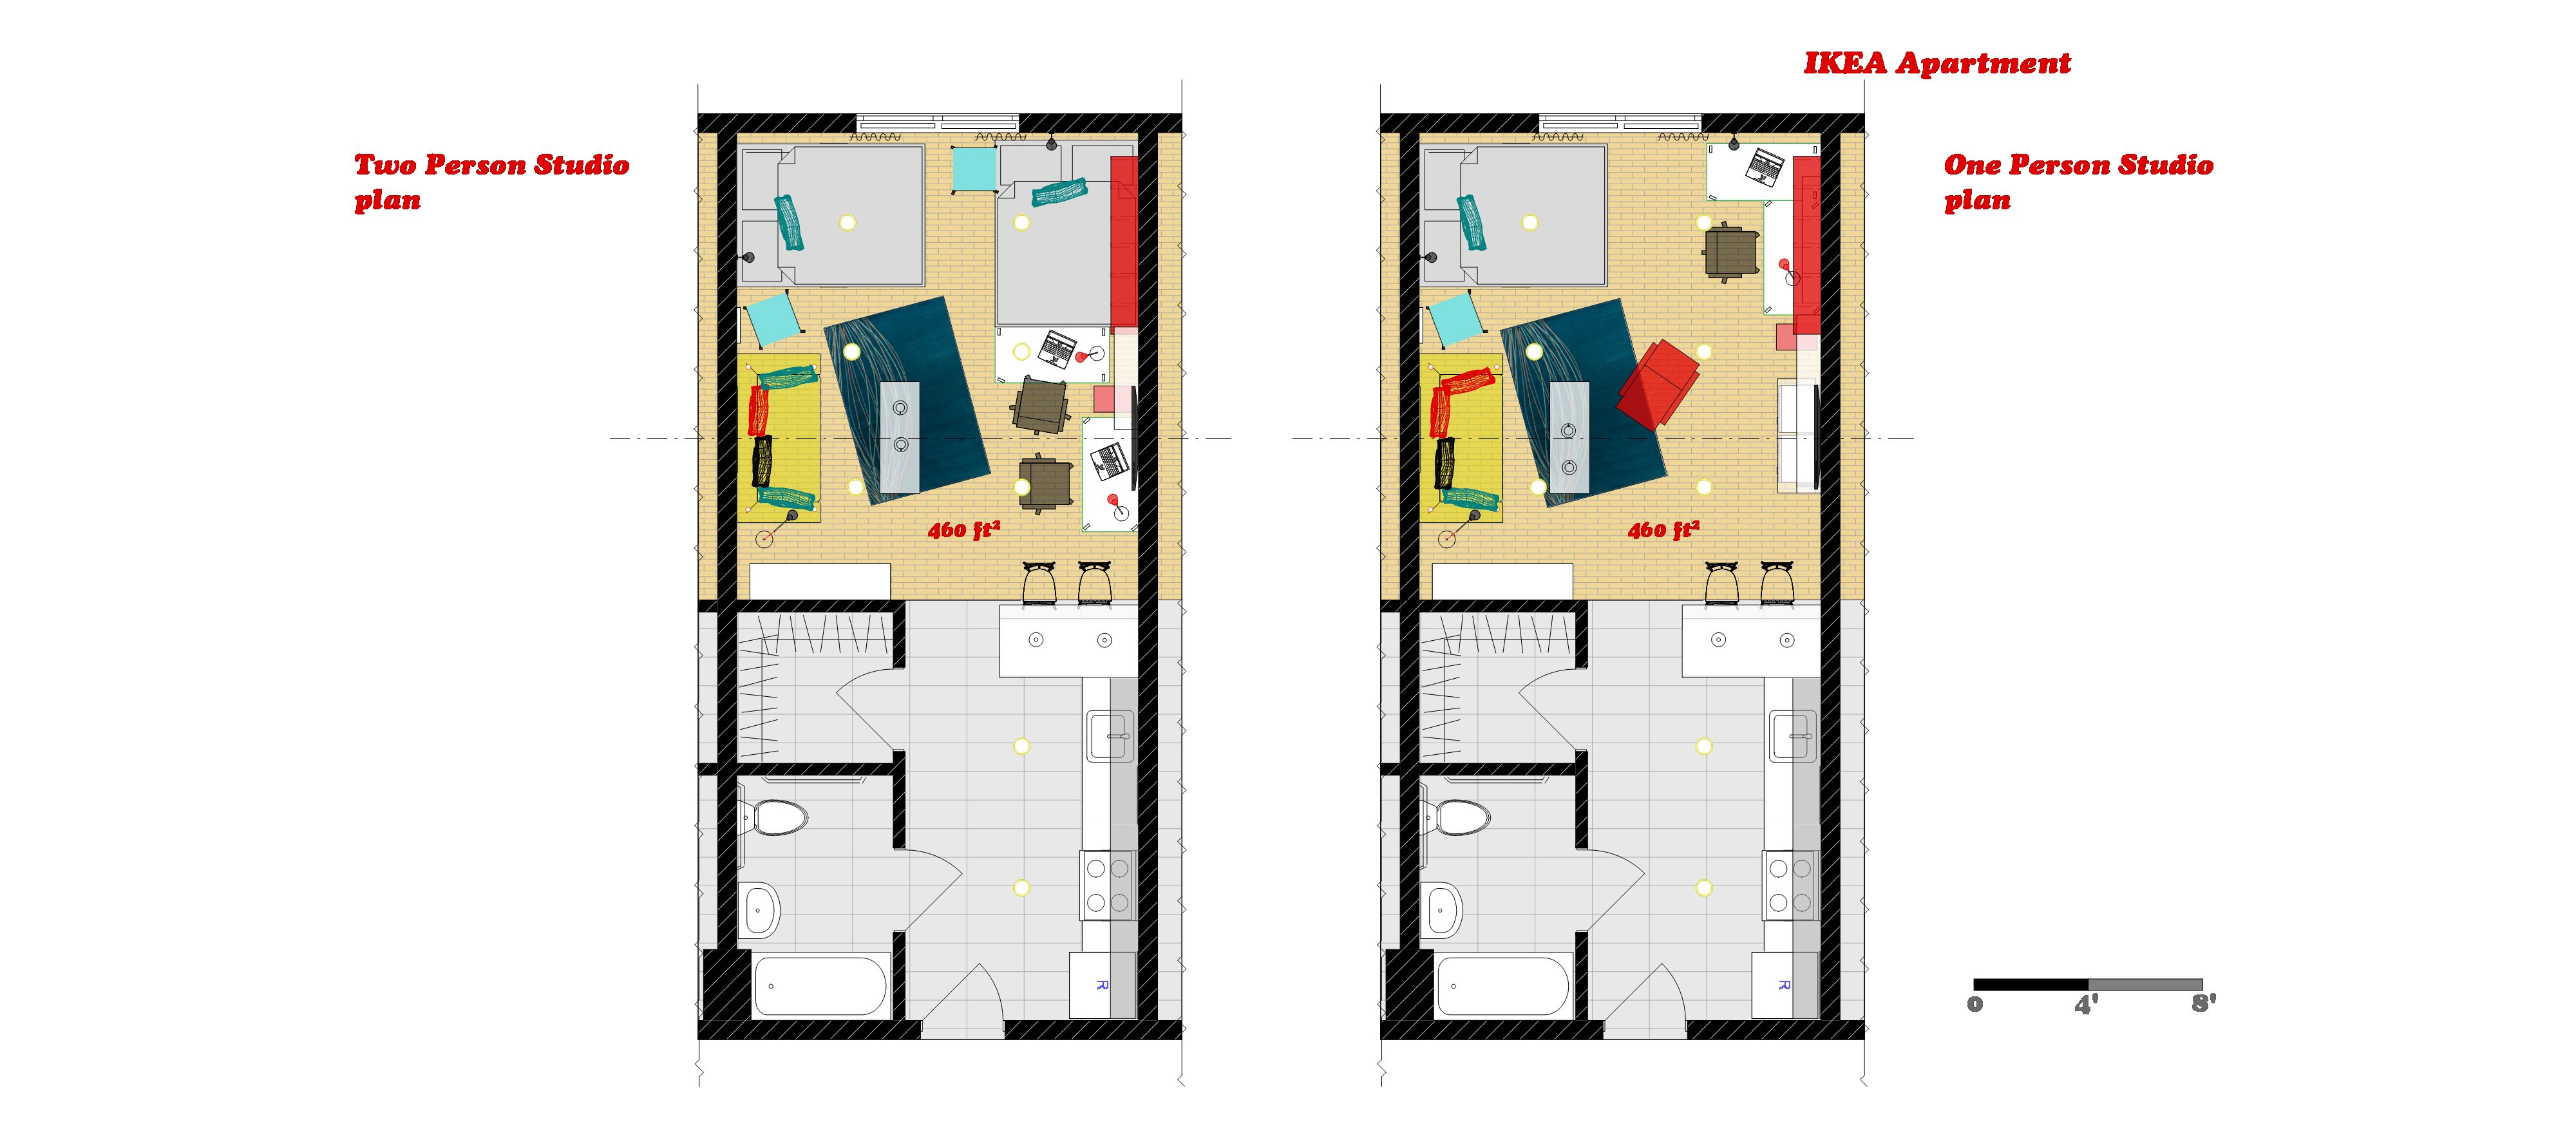 Ikea studio apartment floor plans joy studio design Efficiency apartment floor plan